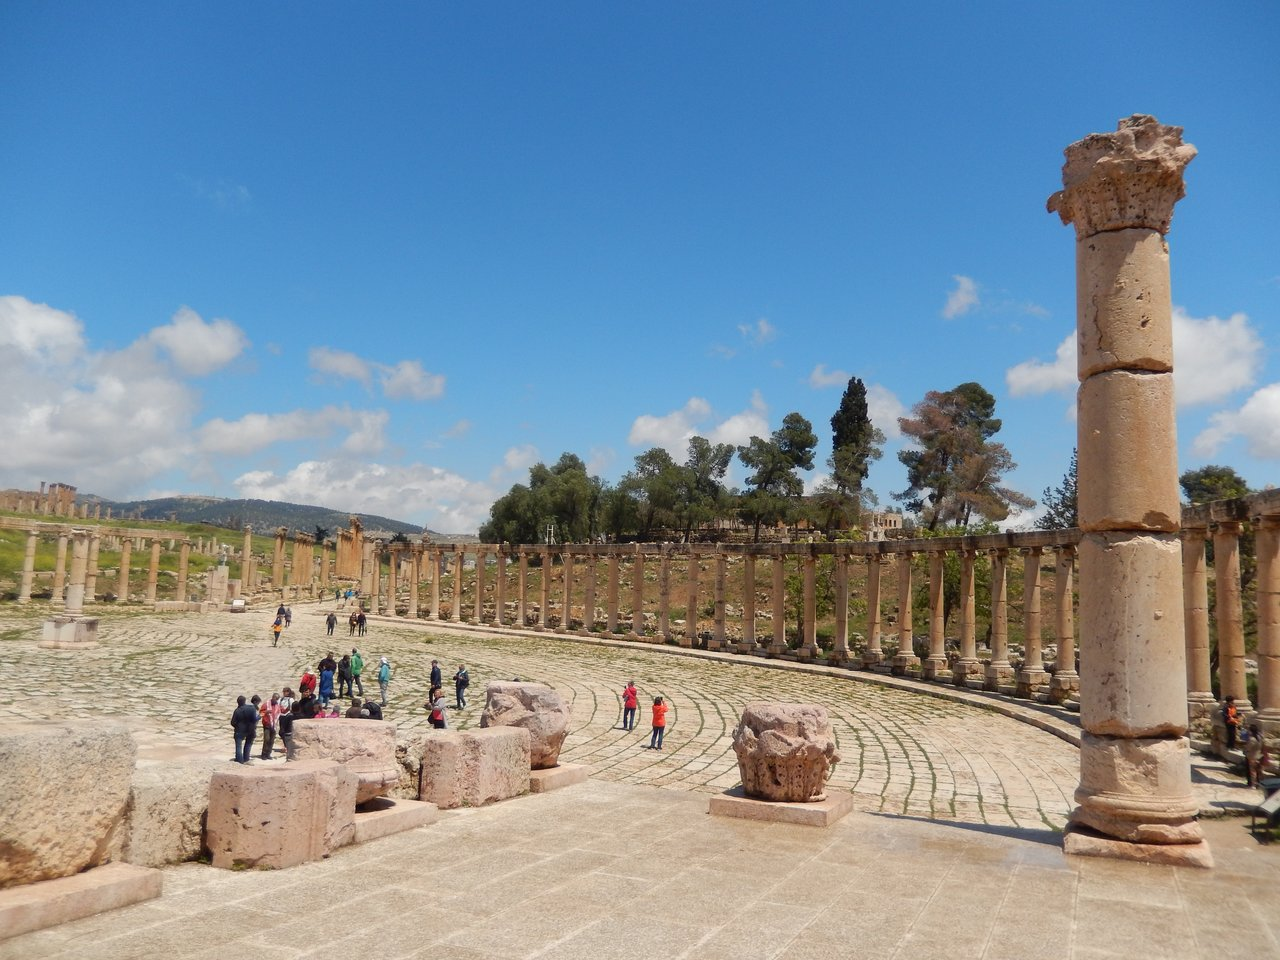 The well-preserved Forum at Jerash | Photo taken by Linley V